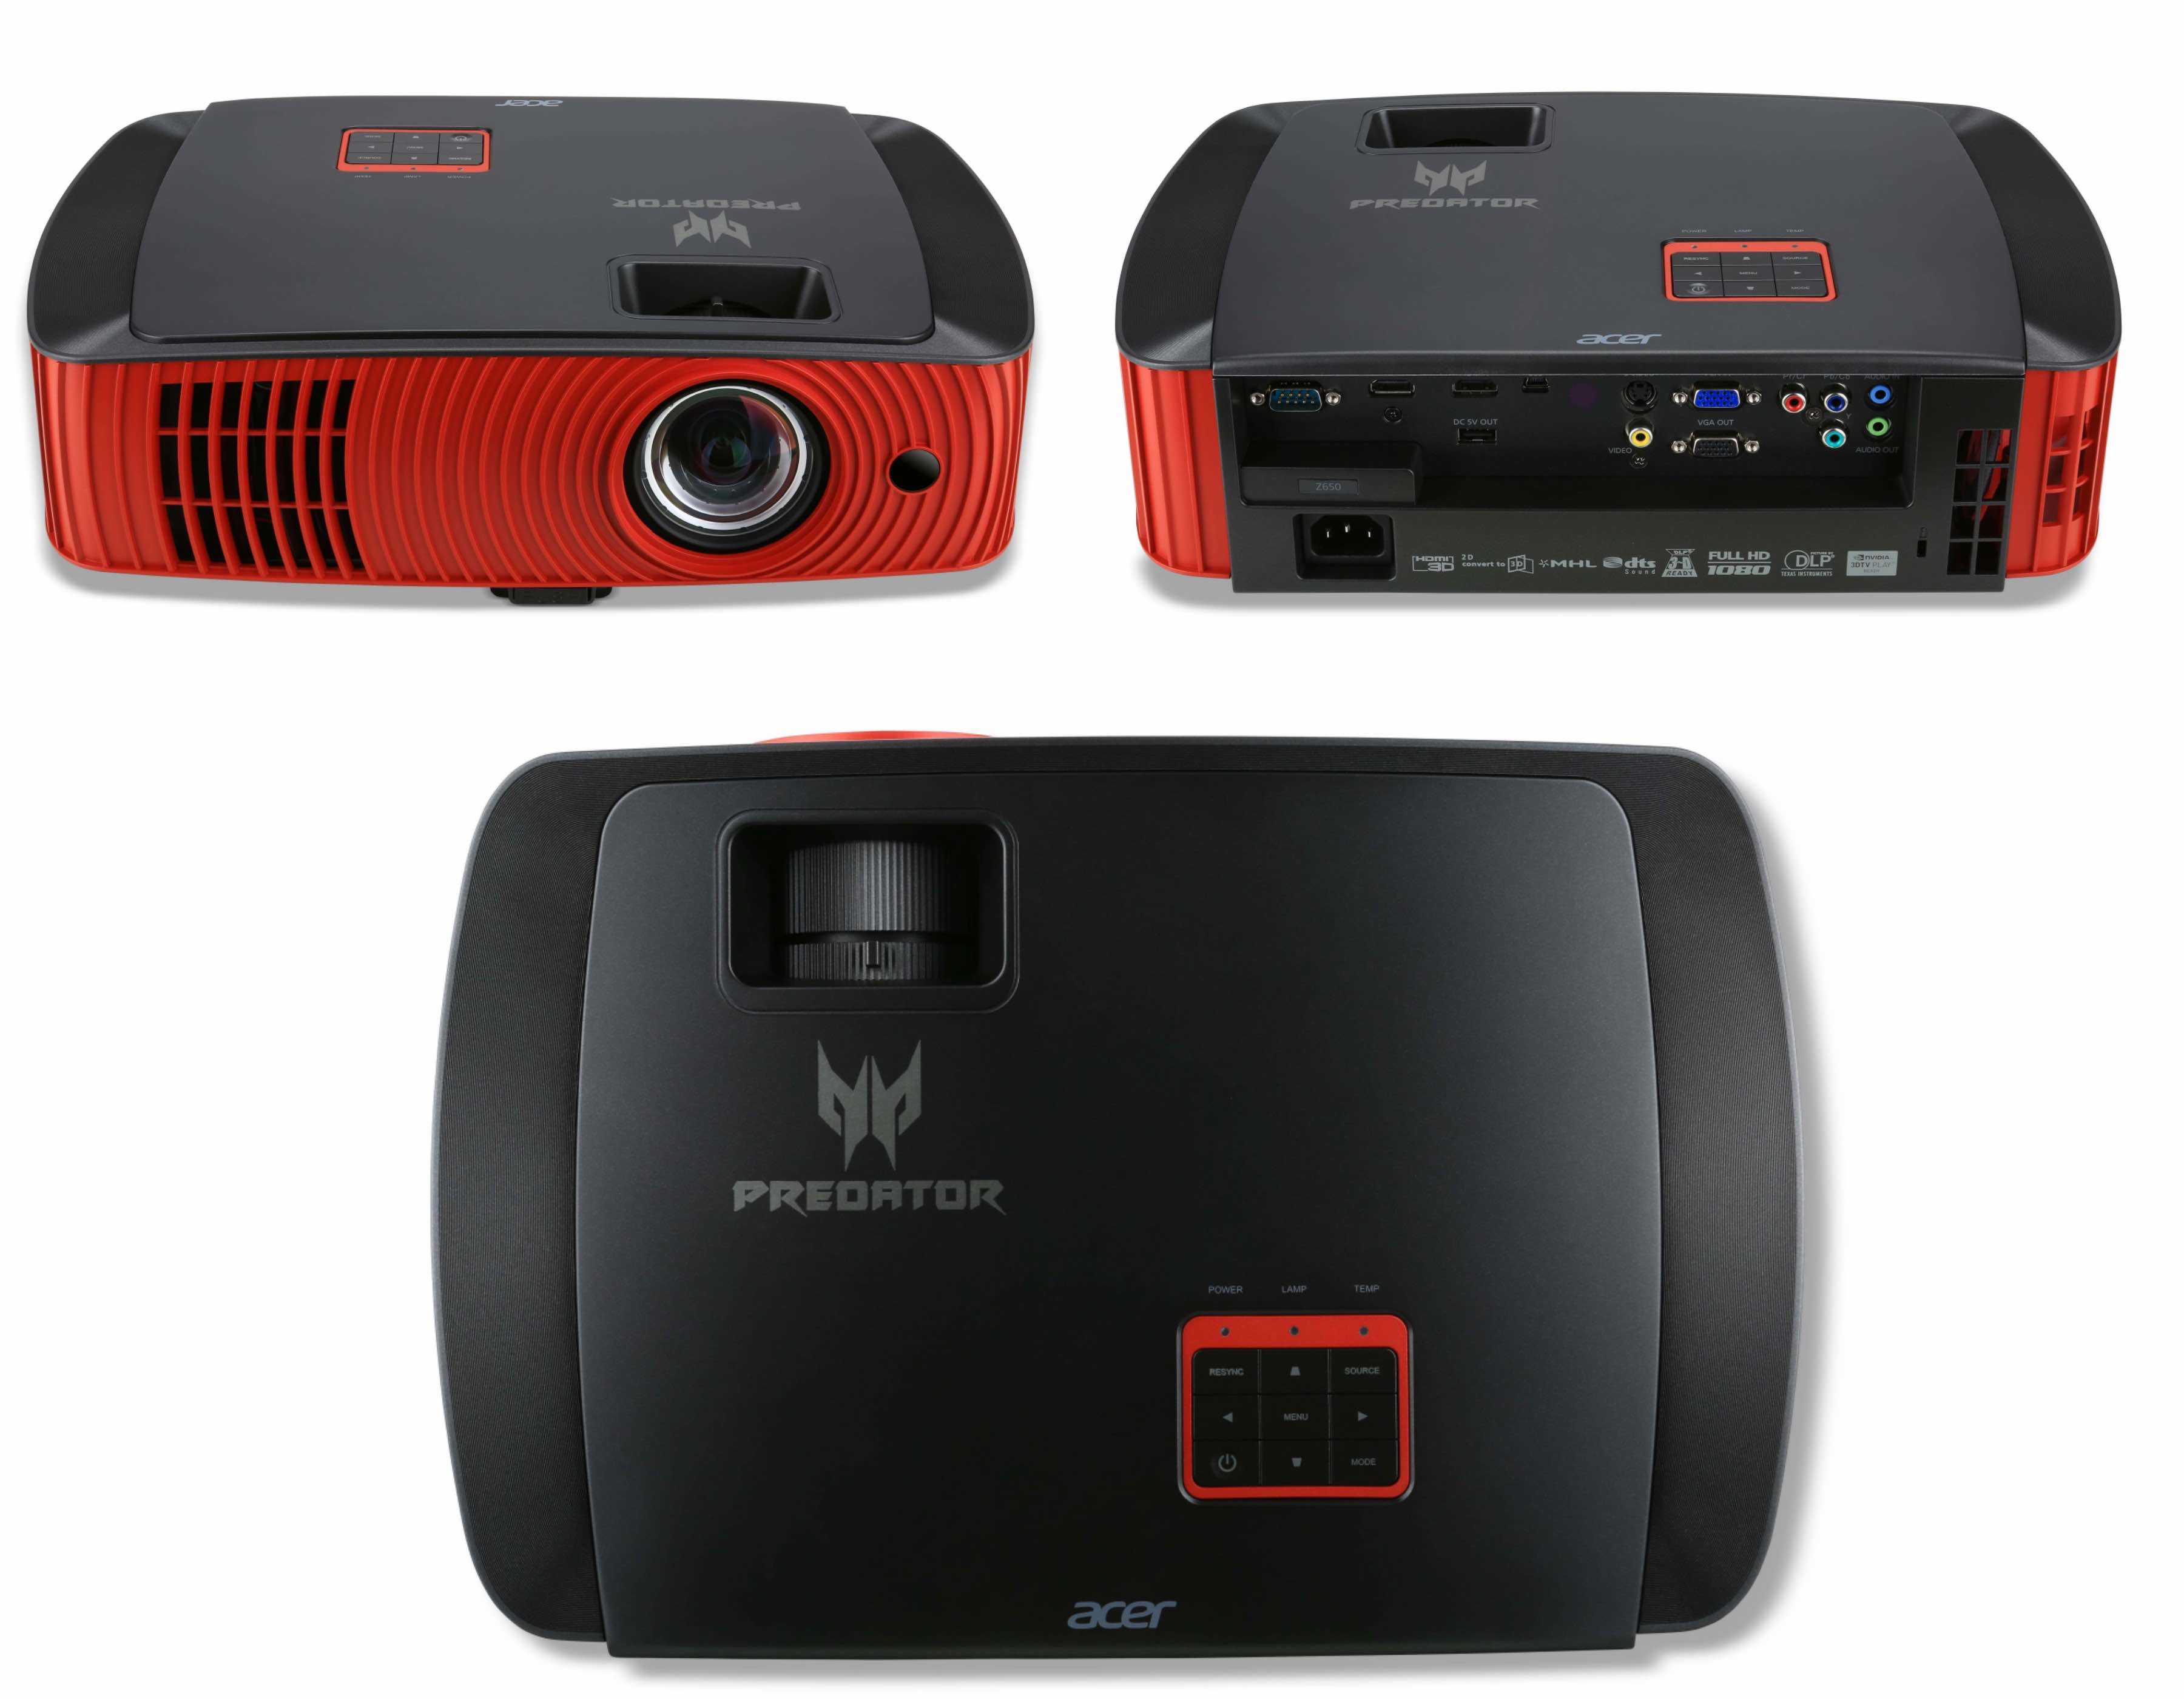 Meet the Predator Z650 Gaming Projector